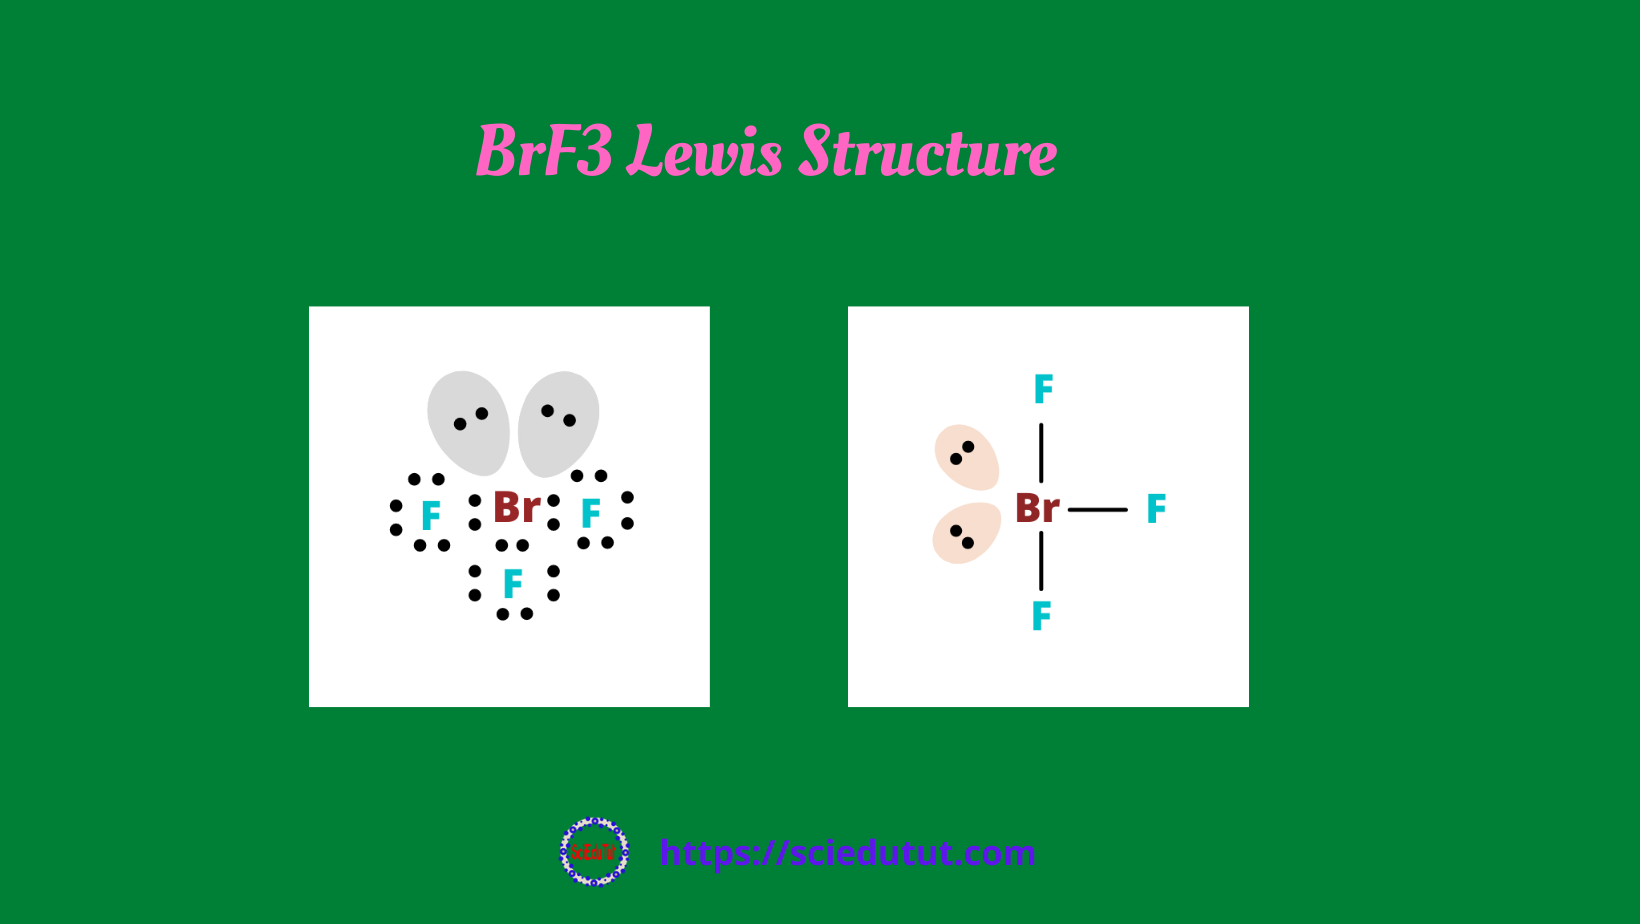 Best overview: Is BrF3 Polar or Nonpolar